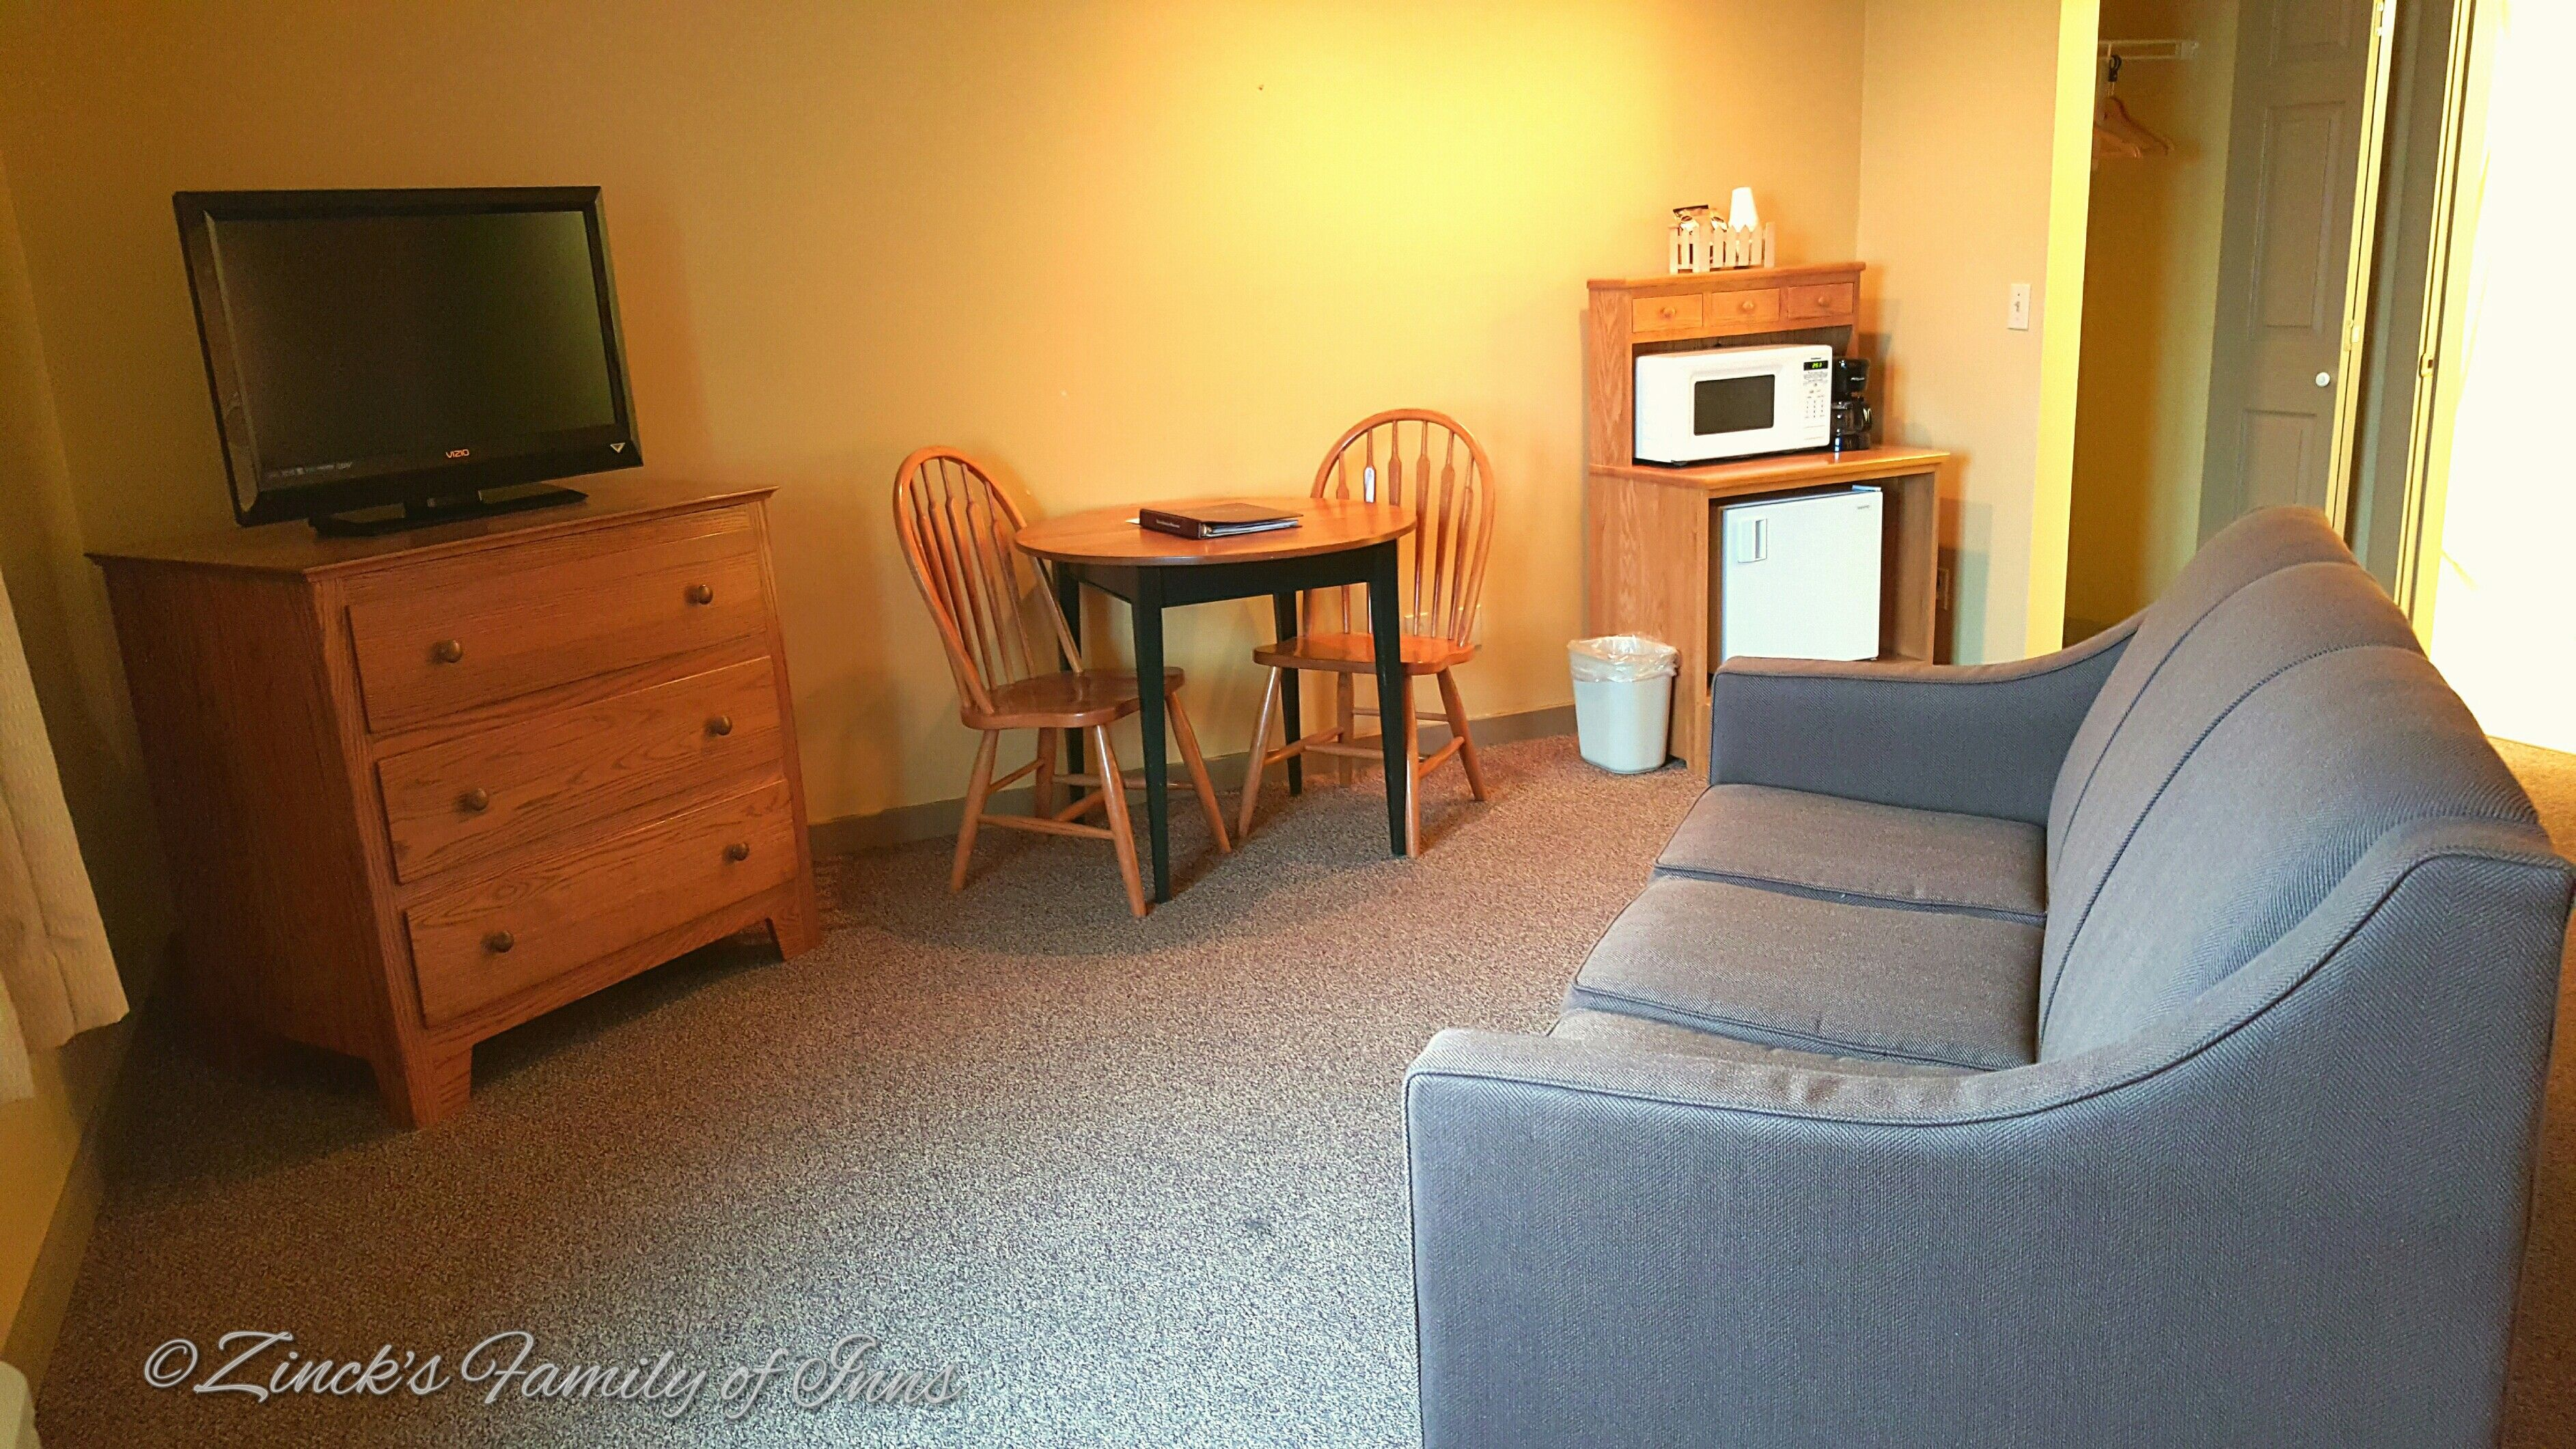 hotels berlin of comfort reservations ohio suites general oh comforter township rd